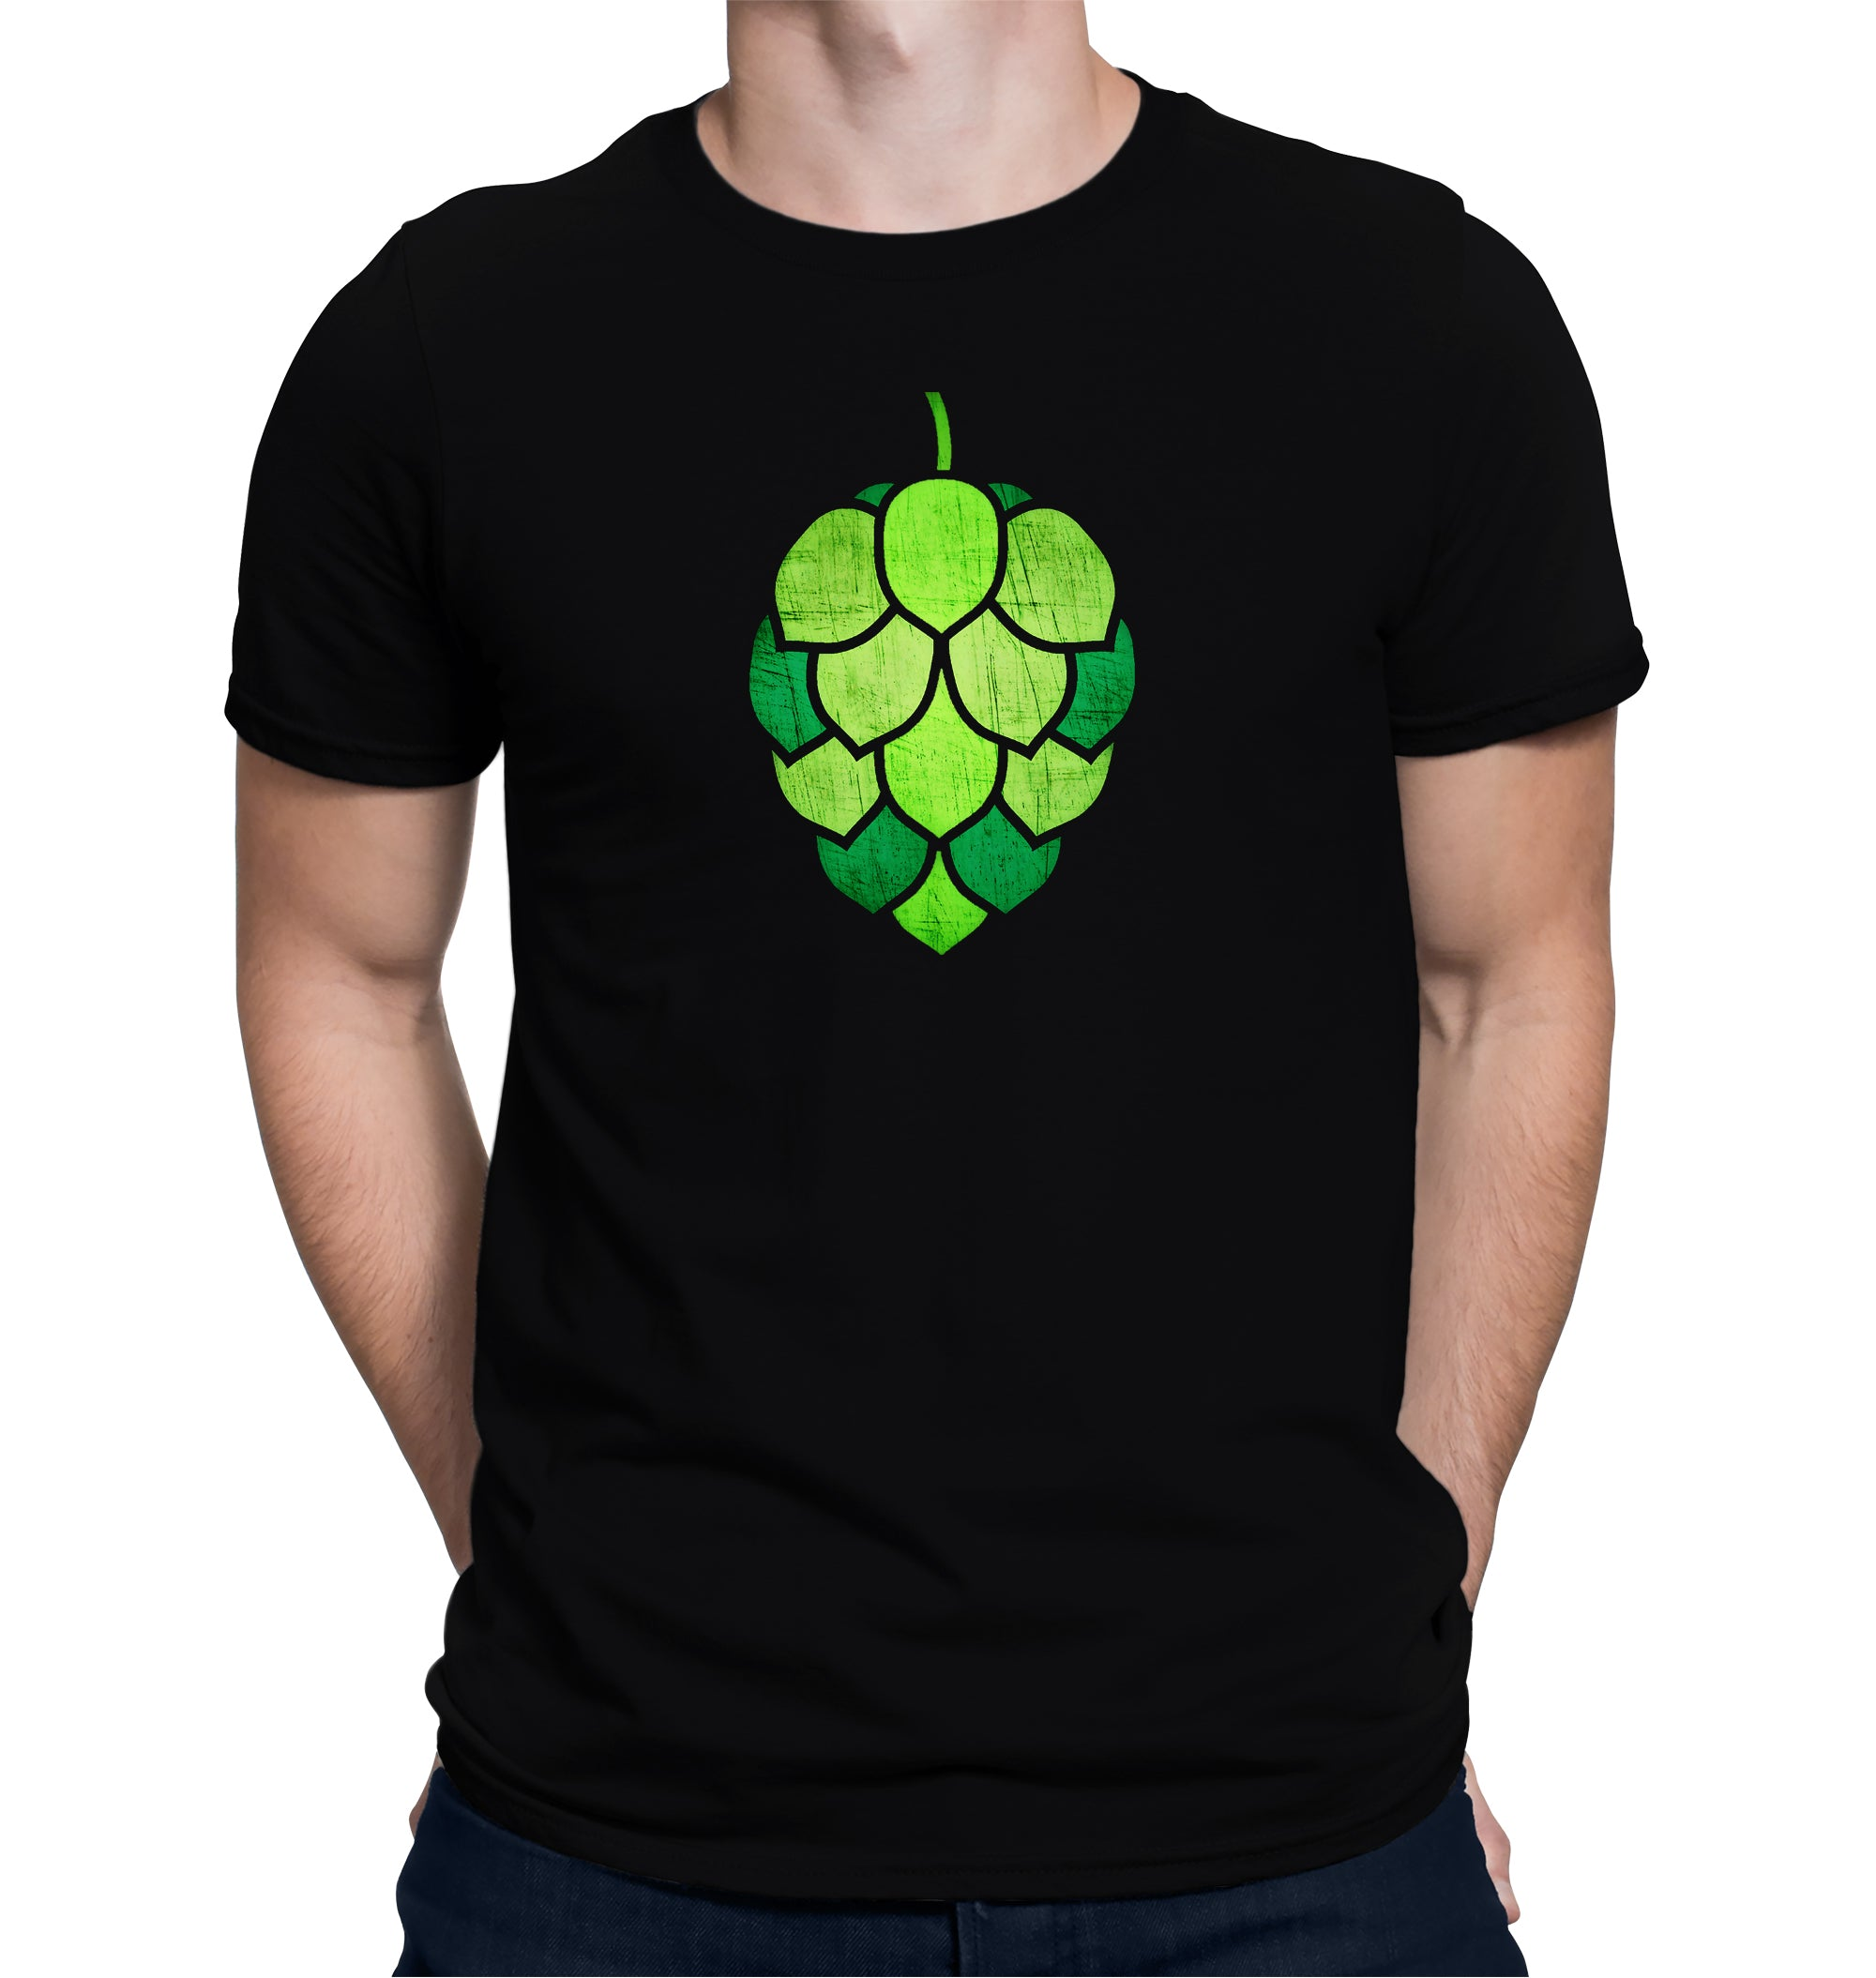 Stained Glass Hop Cone T-Shirt on Model